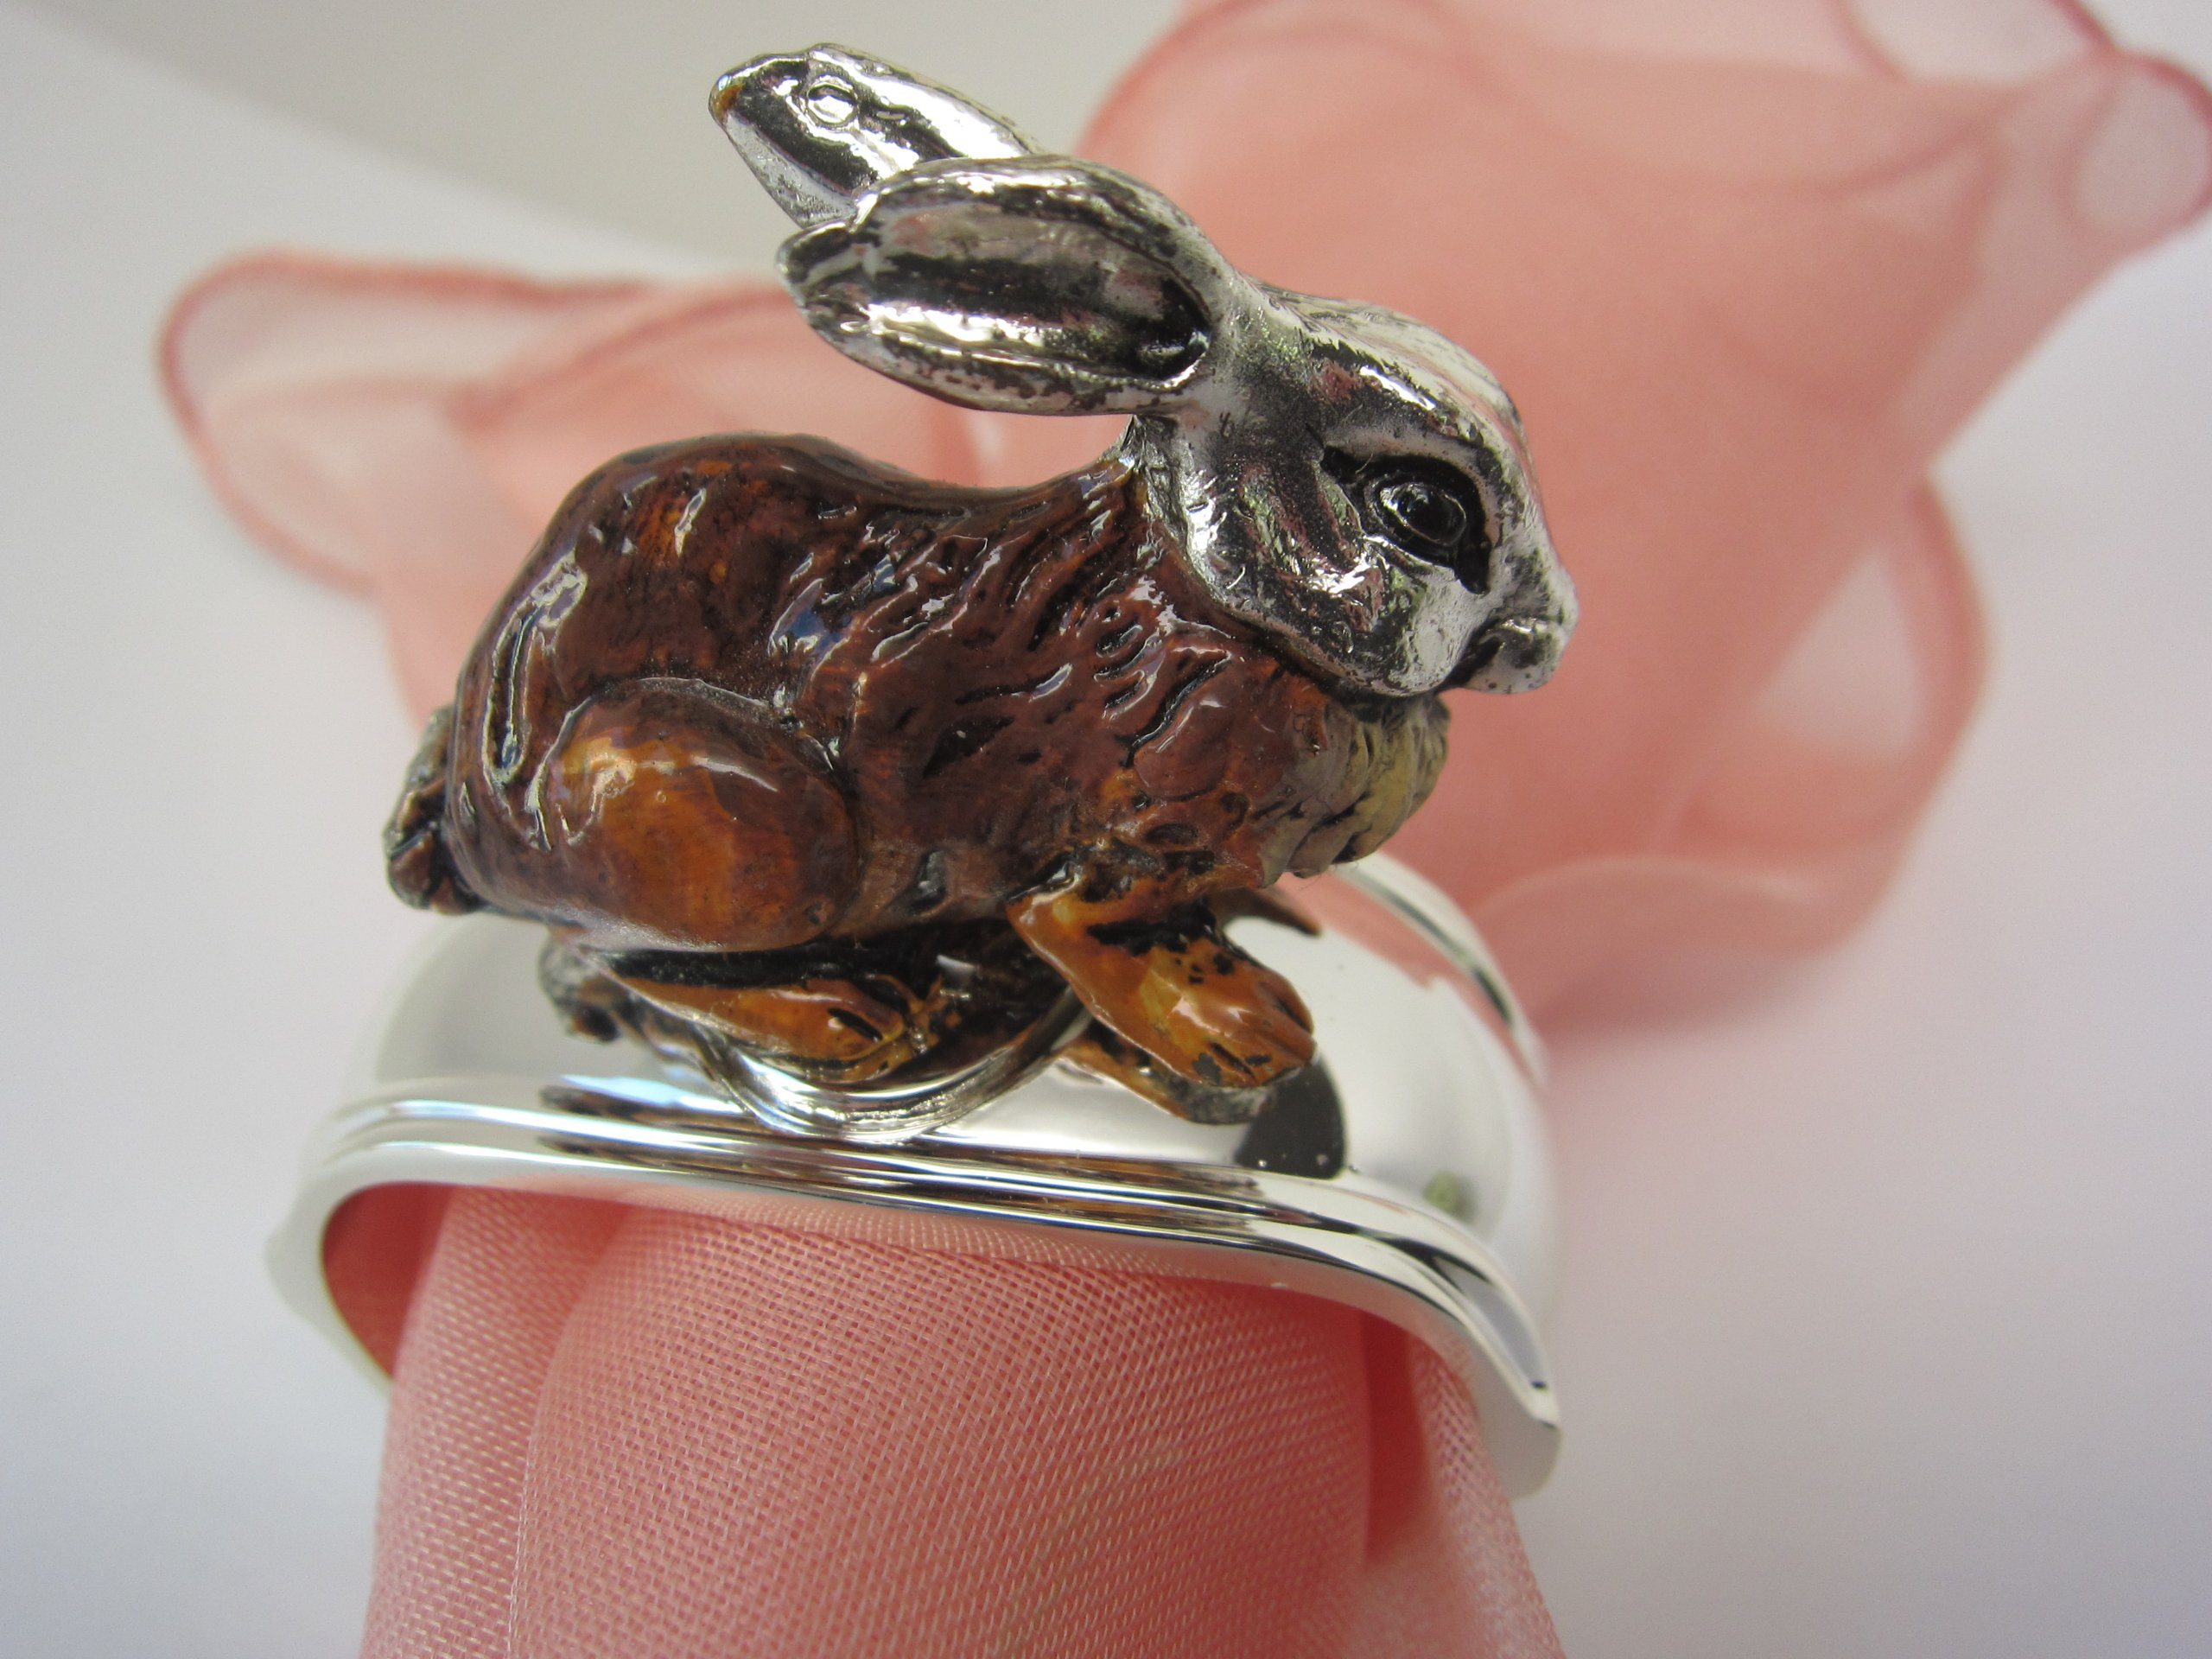 Hans Turnwald Set 4 Rabbit Bunny Signed Silverplate Figural Napkin Rings Easter Gift Box by Hans Turnwald (Image #1)